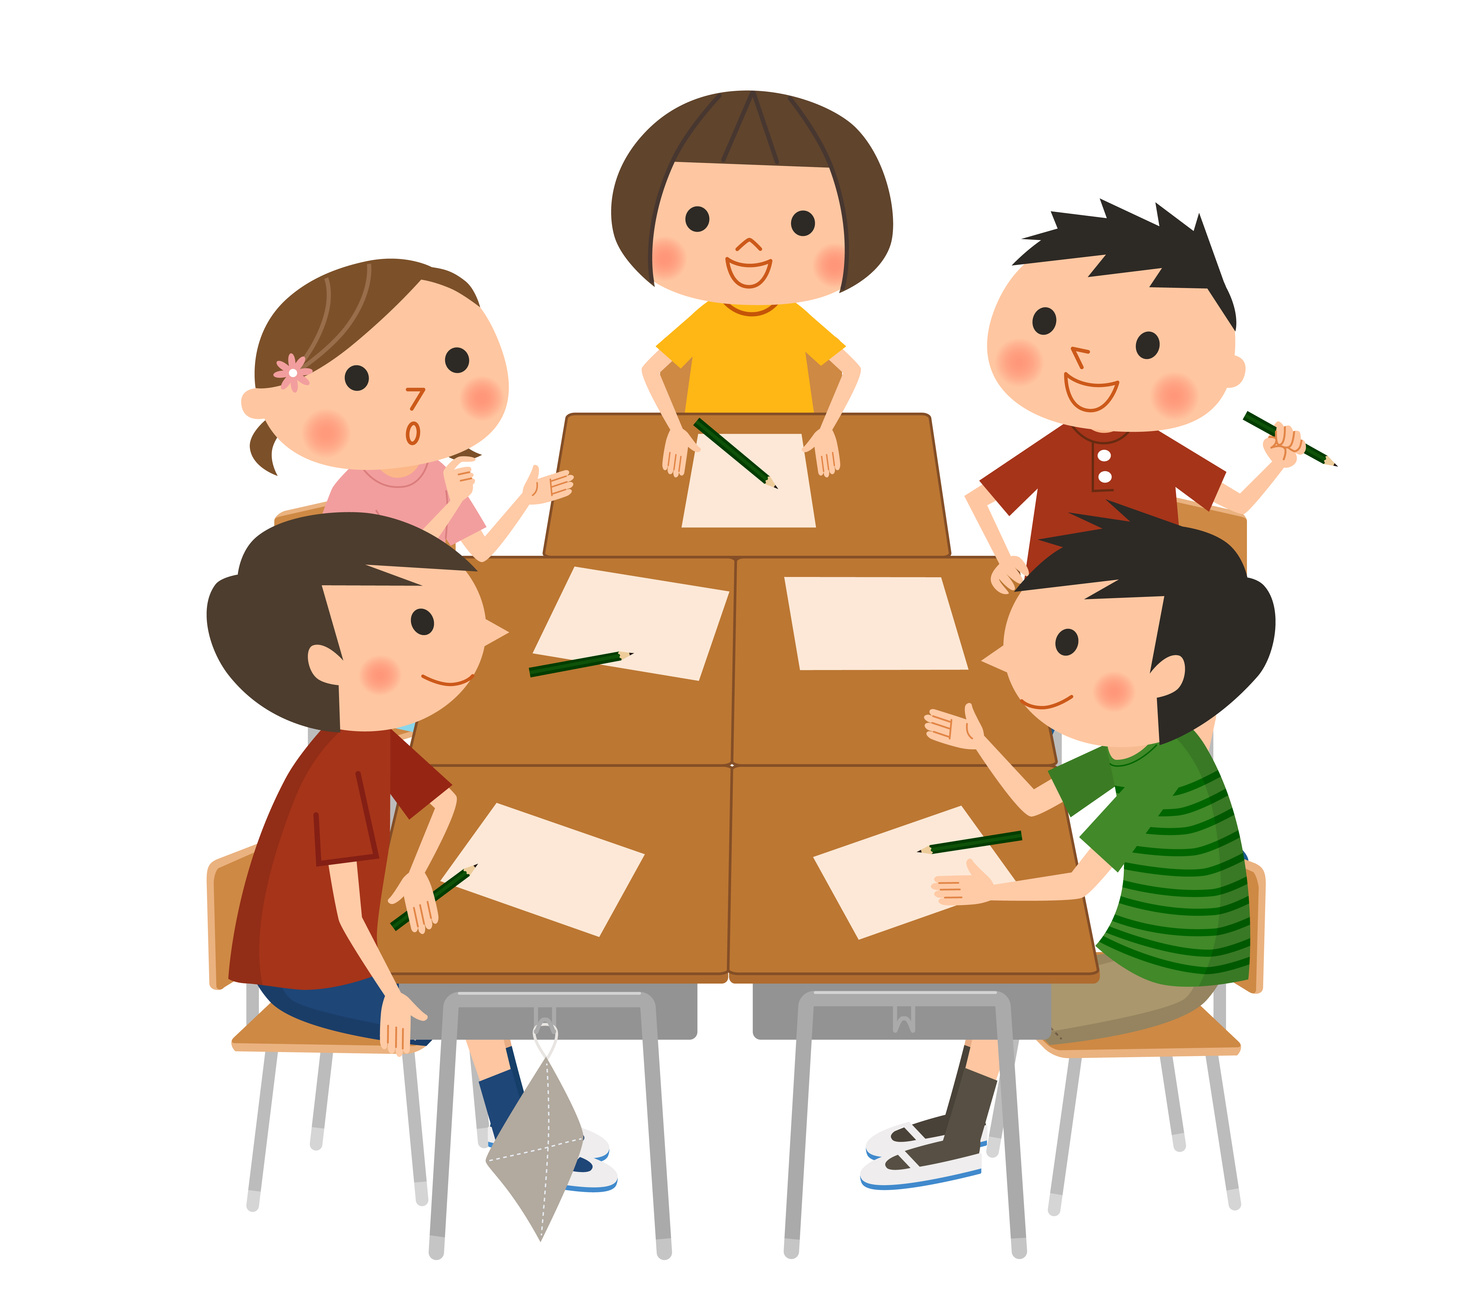 group work for kids